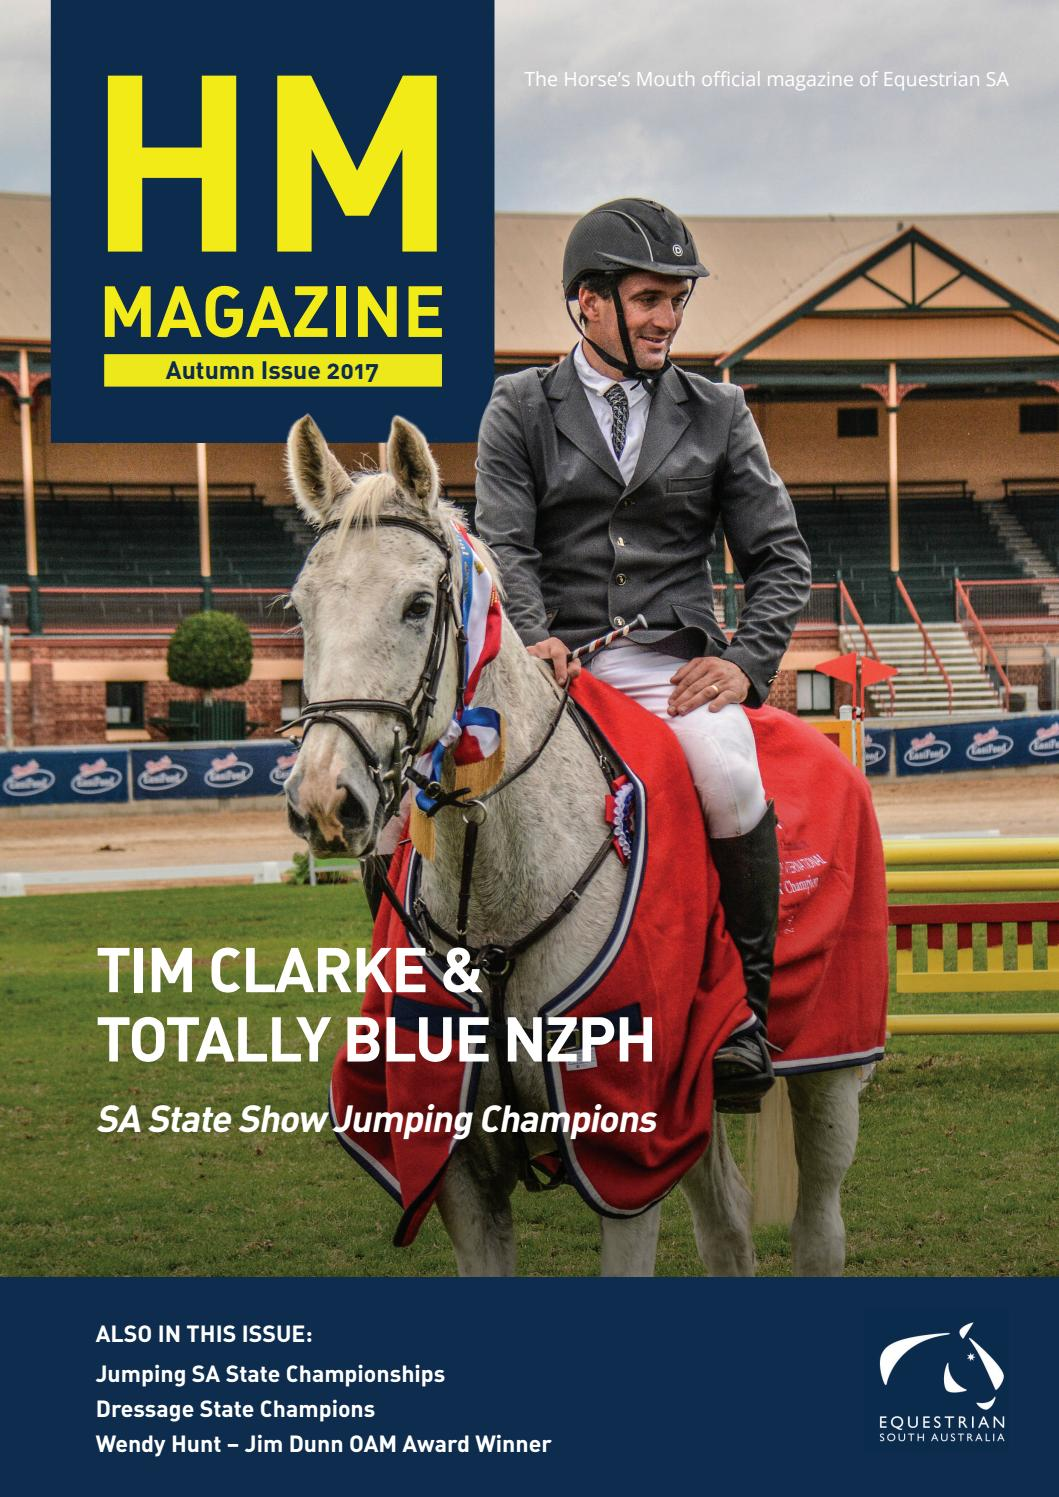 Champion Driving School >> The Horse's Mouth | Autumn issue 2017 by Equestrian SA - Issuu